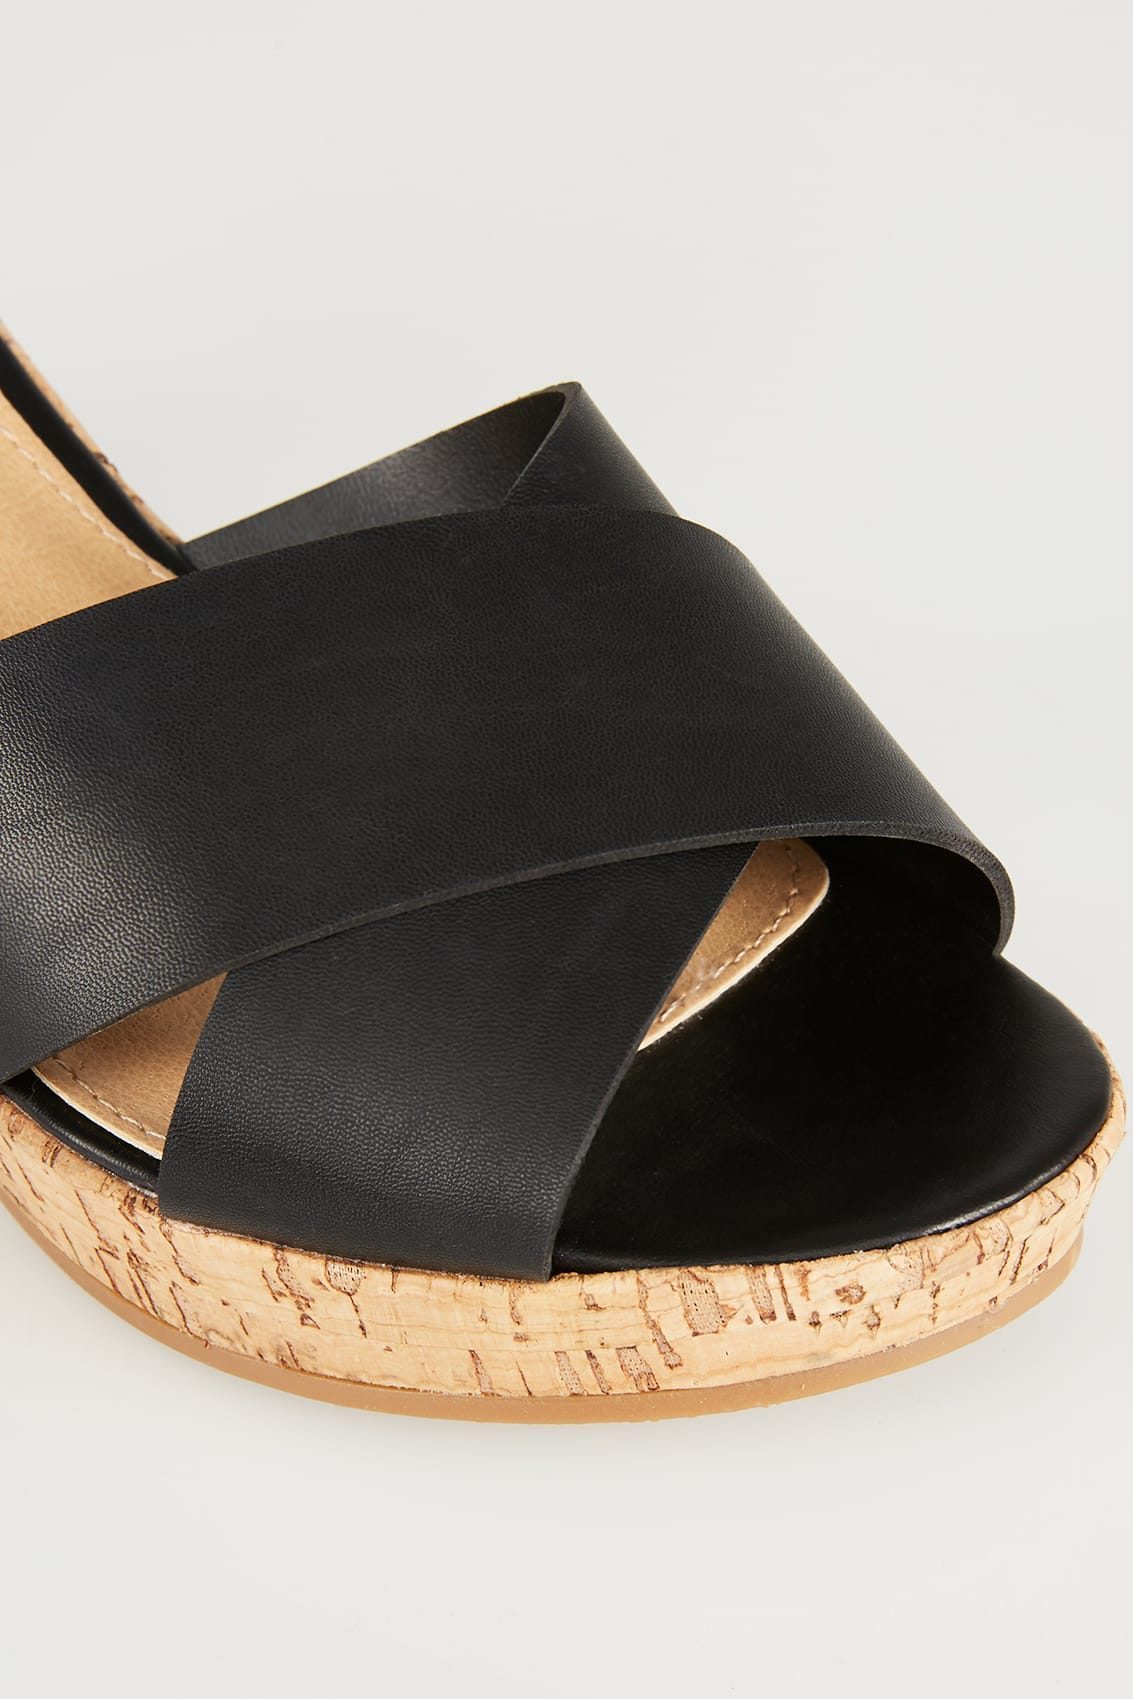 Rooms: Black Crossover Cork Wedge Sandals In EEE Fit